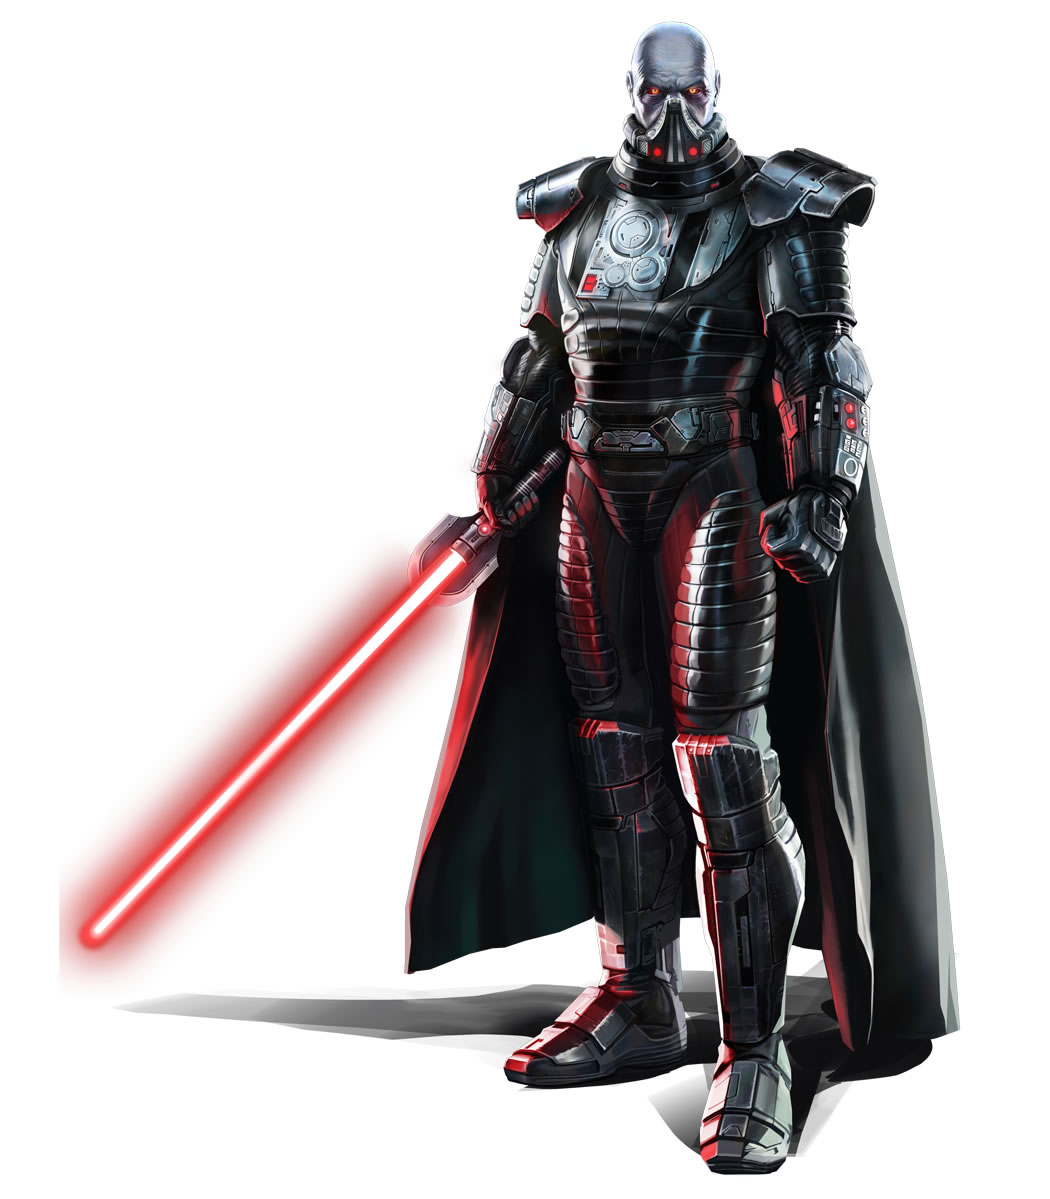 Sith-Warrior.jpg